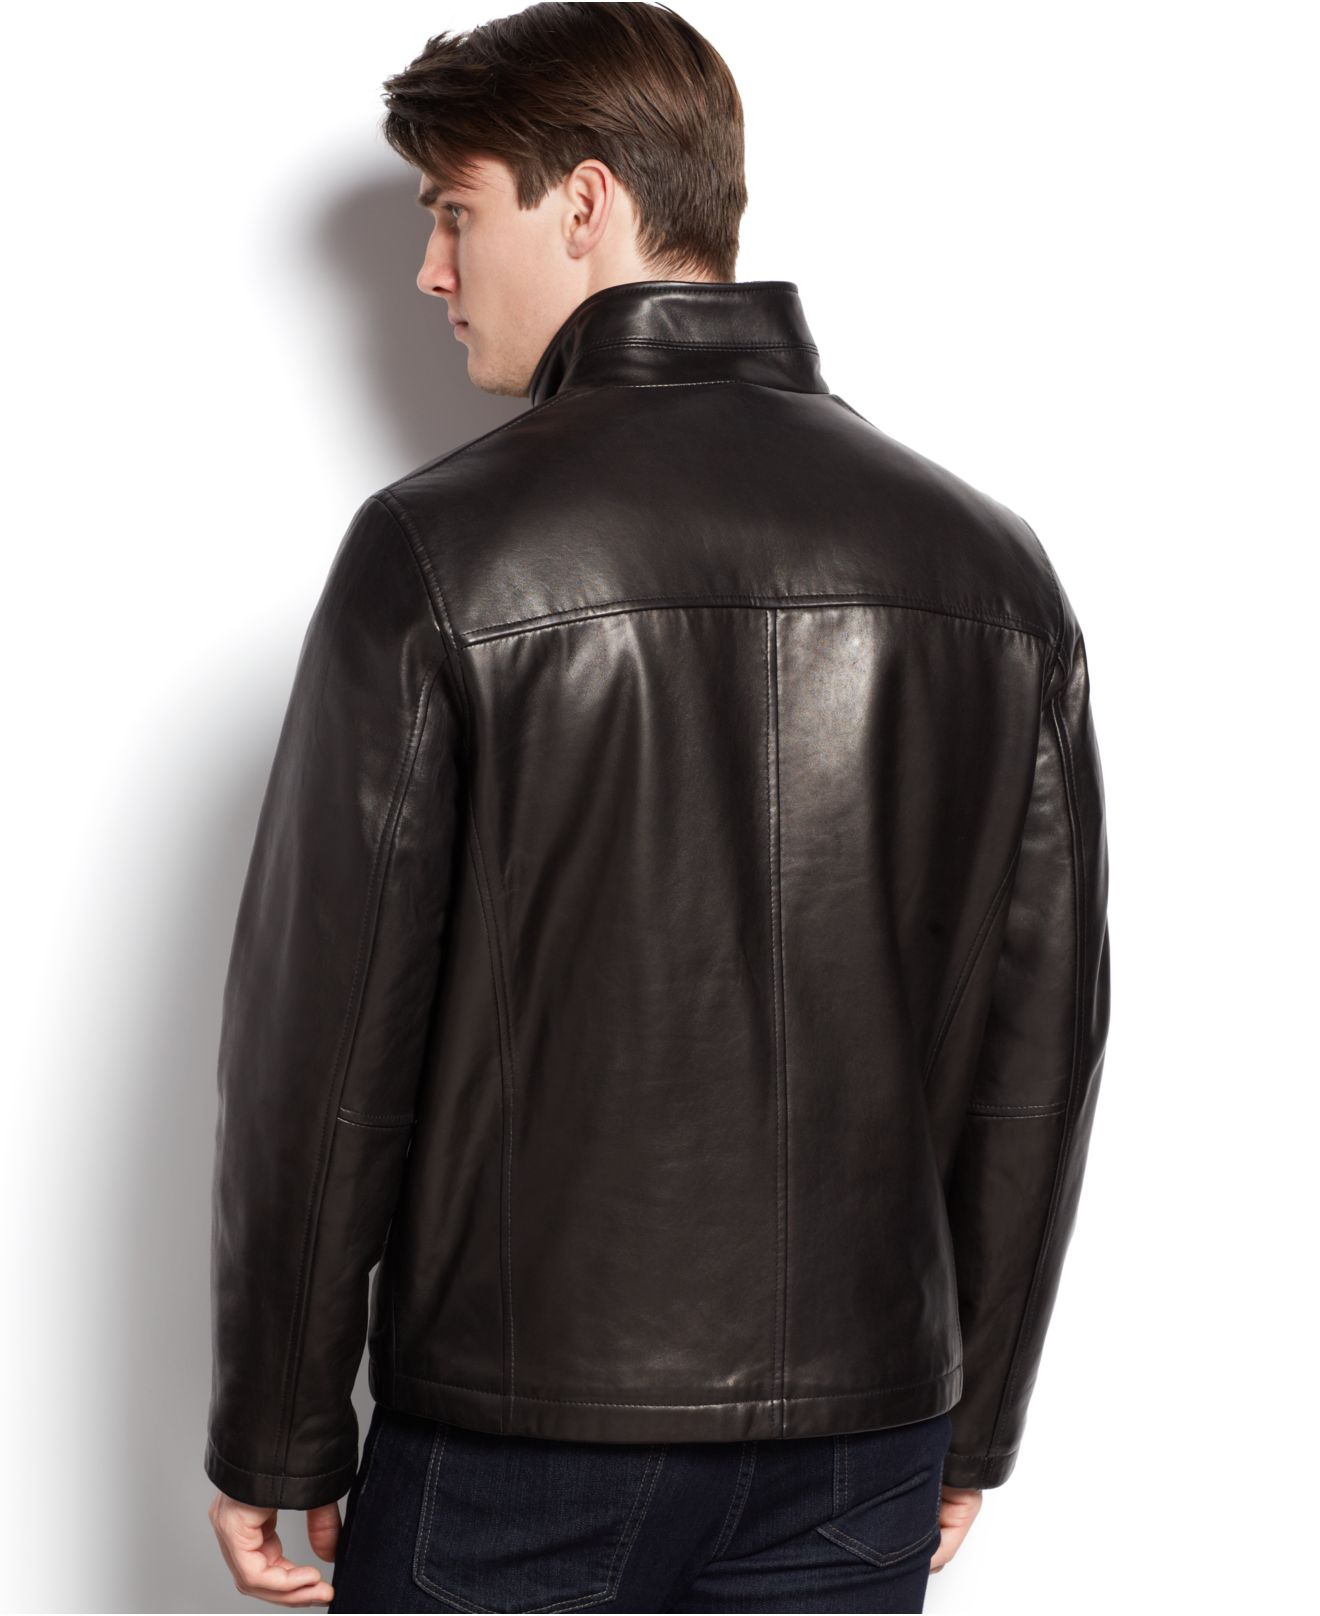 Cole haan Signature Stand-collar Leather Jacket in Black ...